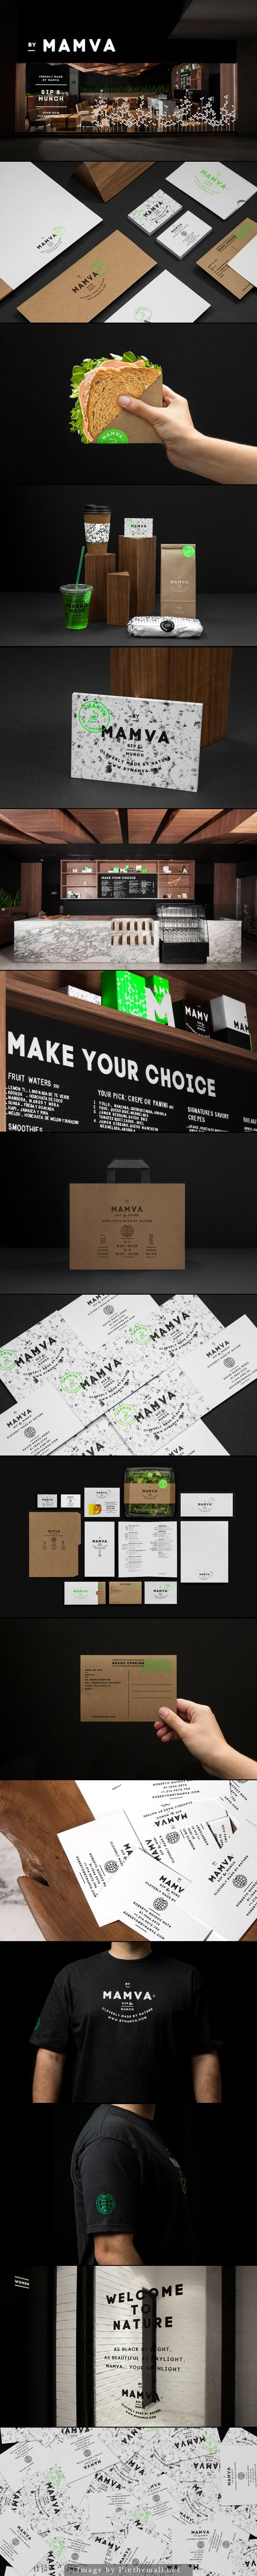 Mamva branding corporate identity stationary logo letterhead business card enveloppe minimal graphic design kraft paper texture packaging eat & drink menu type typography